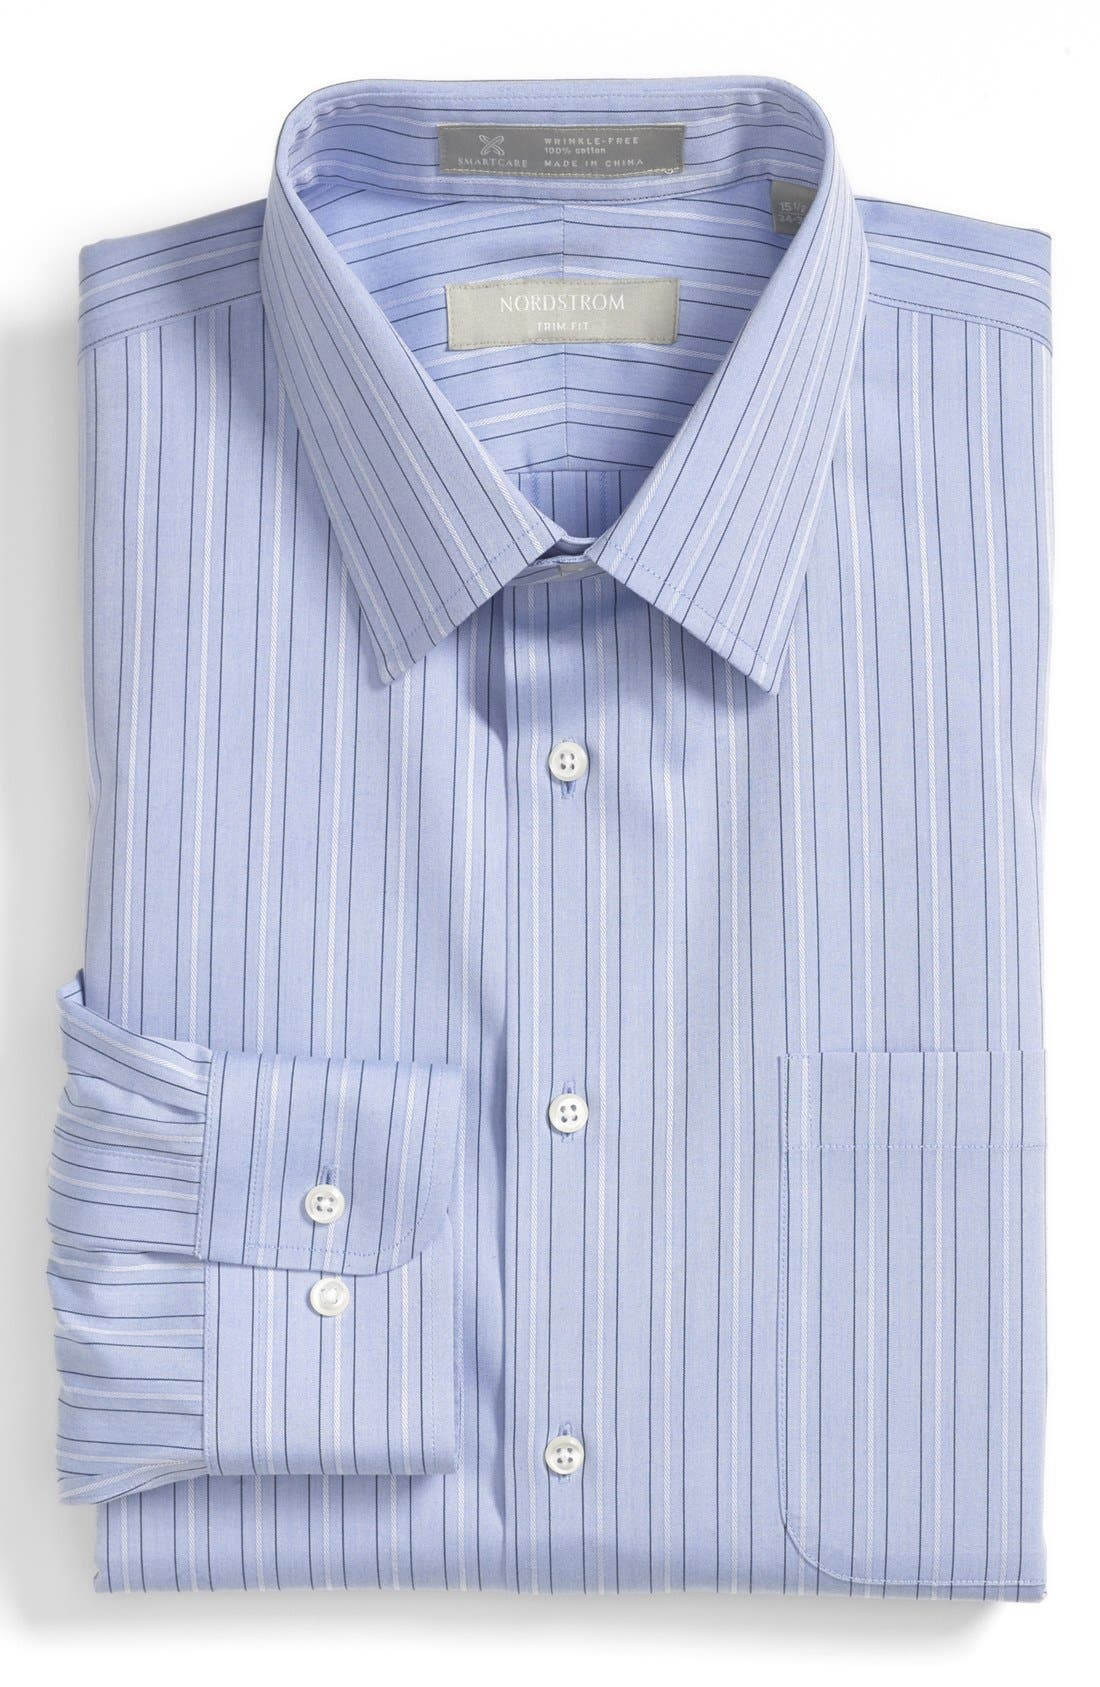 Alternate Image 1 Selected - Nordstrom Smartcare™ Trim Fit Stripe Non-Iron Dress Shirt